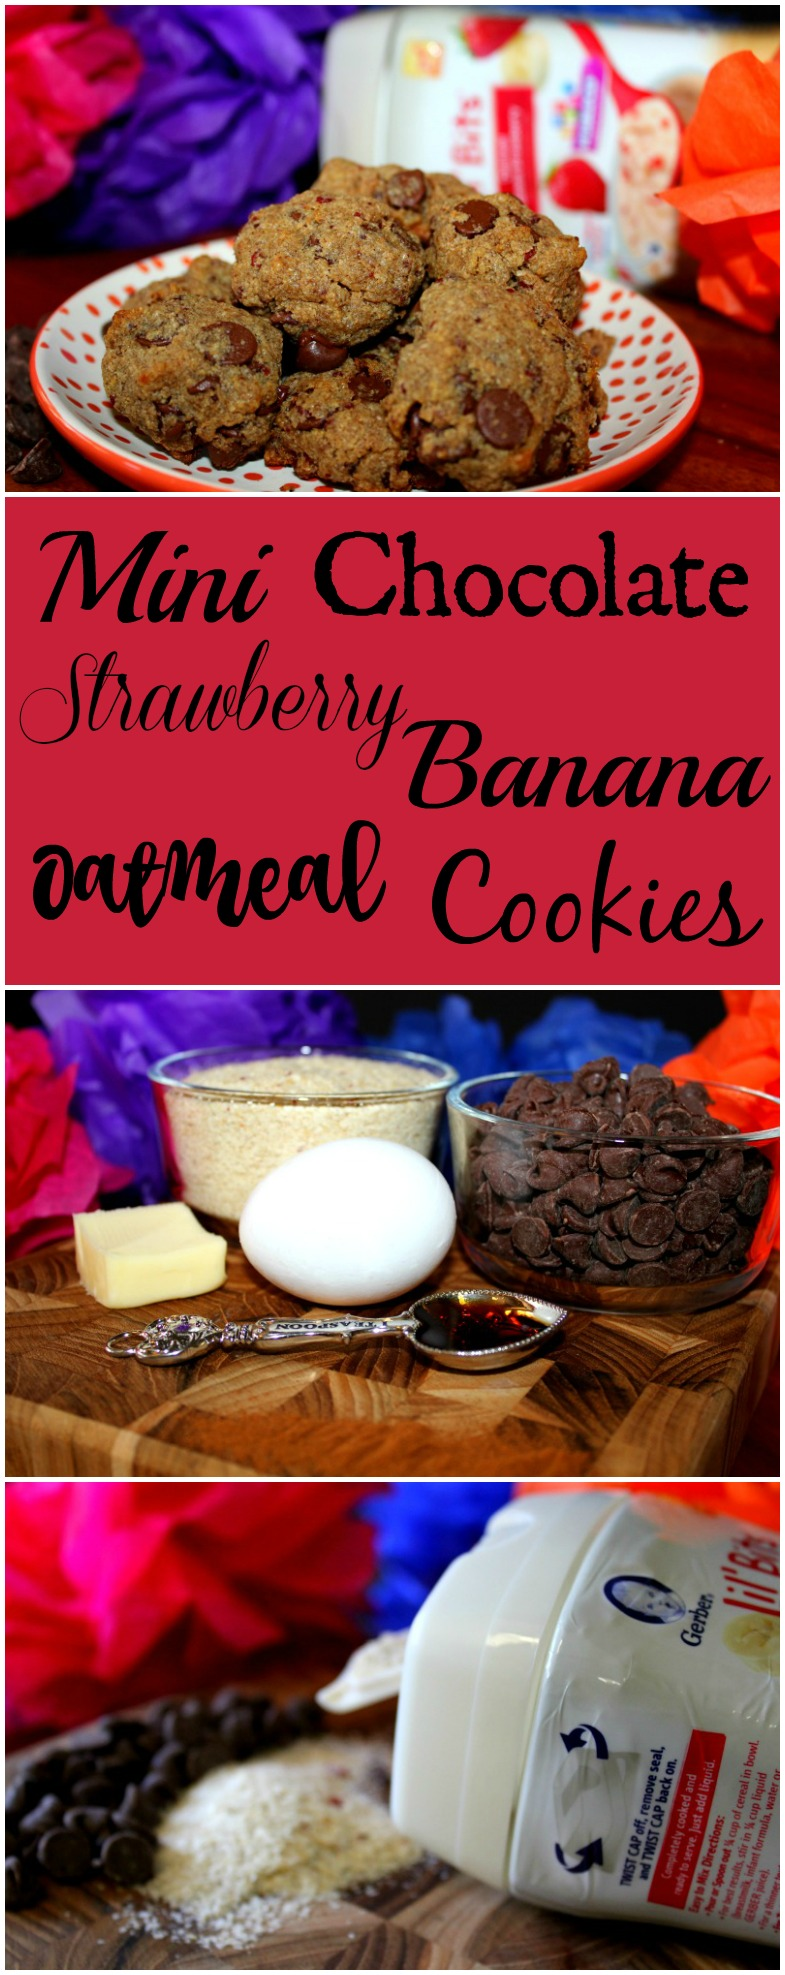 Mini Chocolate Strawberry Banana Oatmeal Cookies Perfect for Little Hands